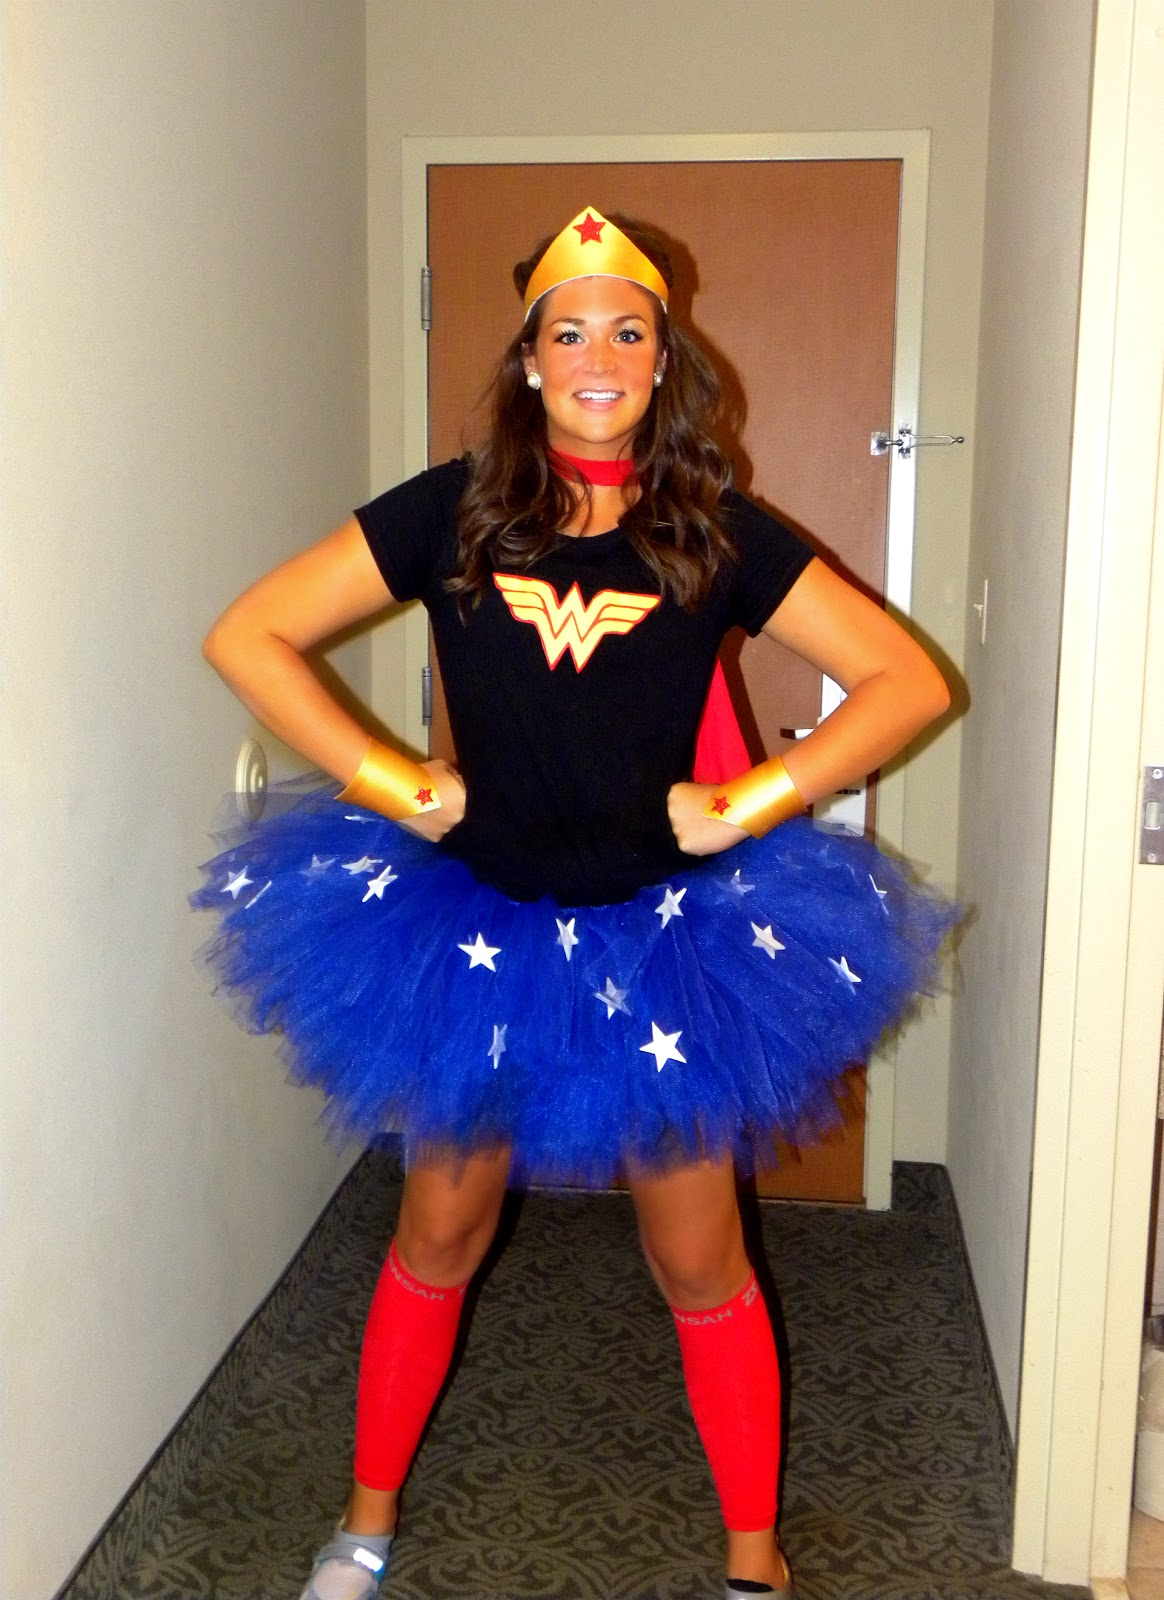 ba4de5a63c855 Then came the Wonder Woman costume for a Superhero 5k. I wore a plain black  tee with a handmade Wonder Woman logo that I just traced and cut out of  adhesive ...